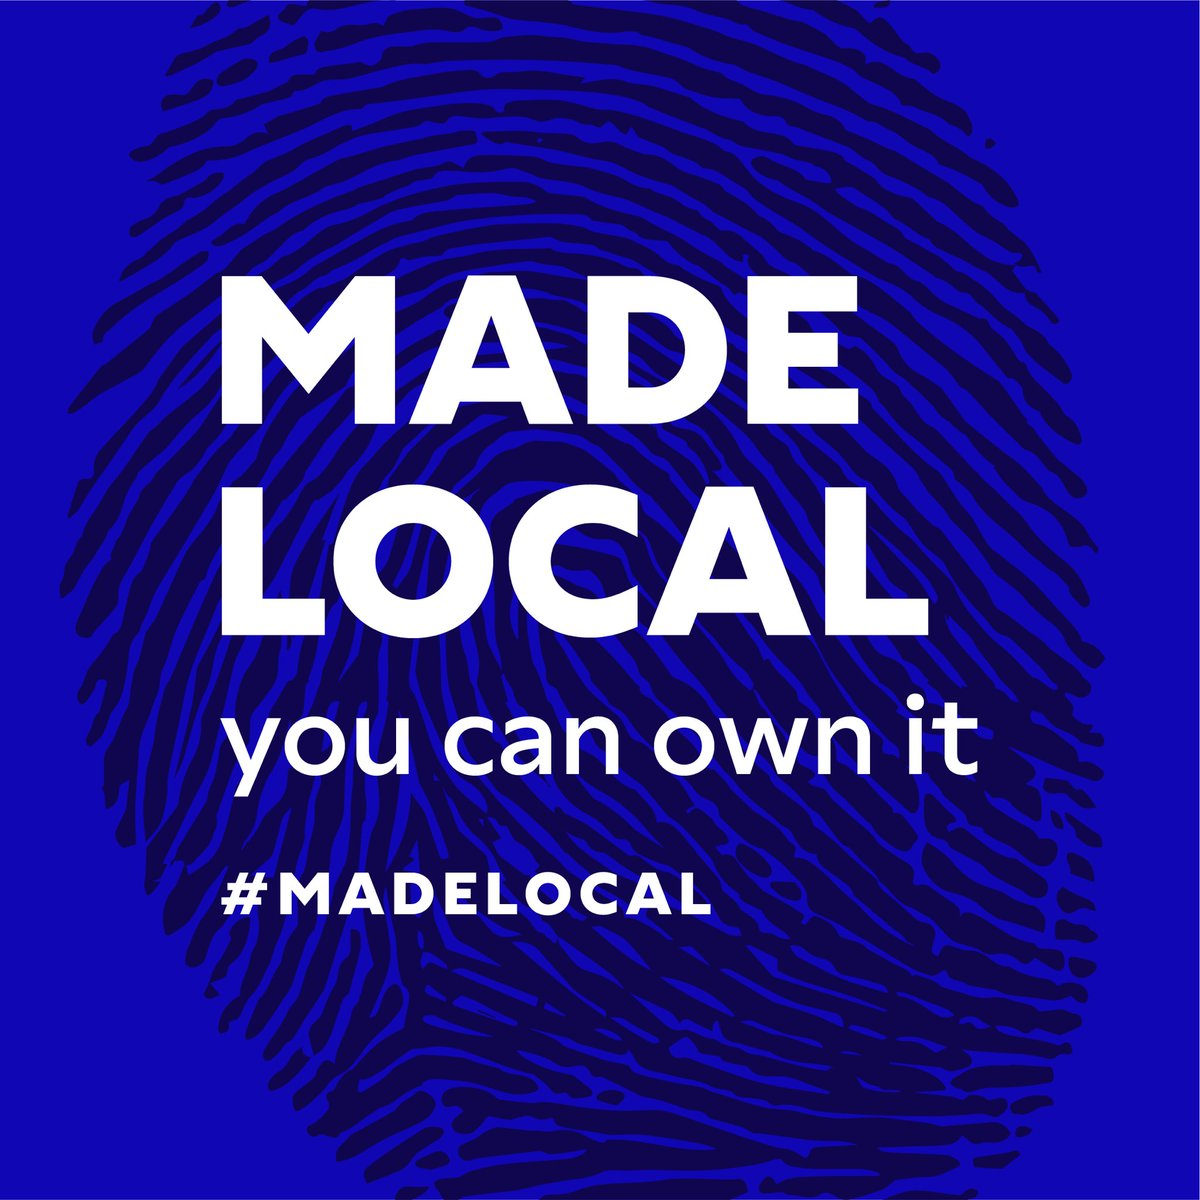 Proudly part of @DCCIreland #madelocal initiative. Please remember where at all possible to buy from artisans who make in Ireland and keep our creative industry going #buyirish xx https://t.co/3NlKdBXflo